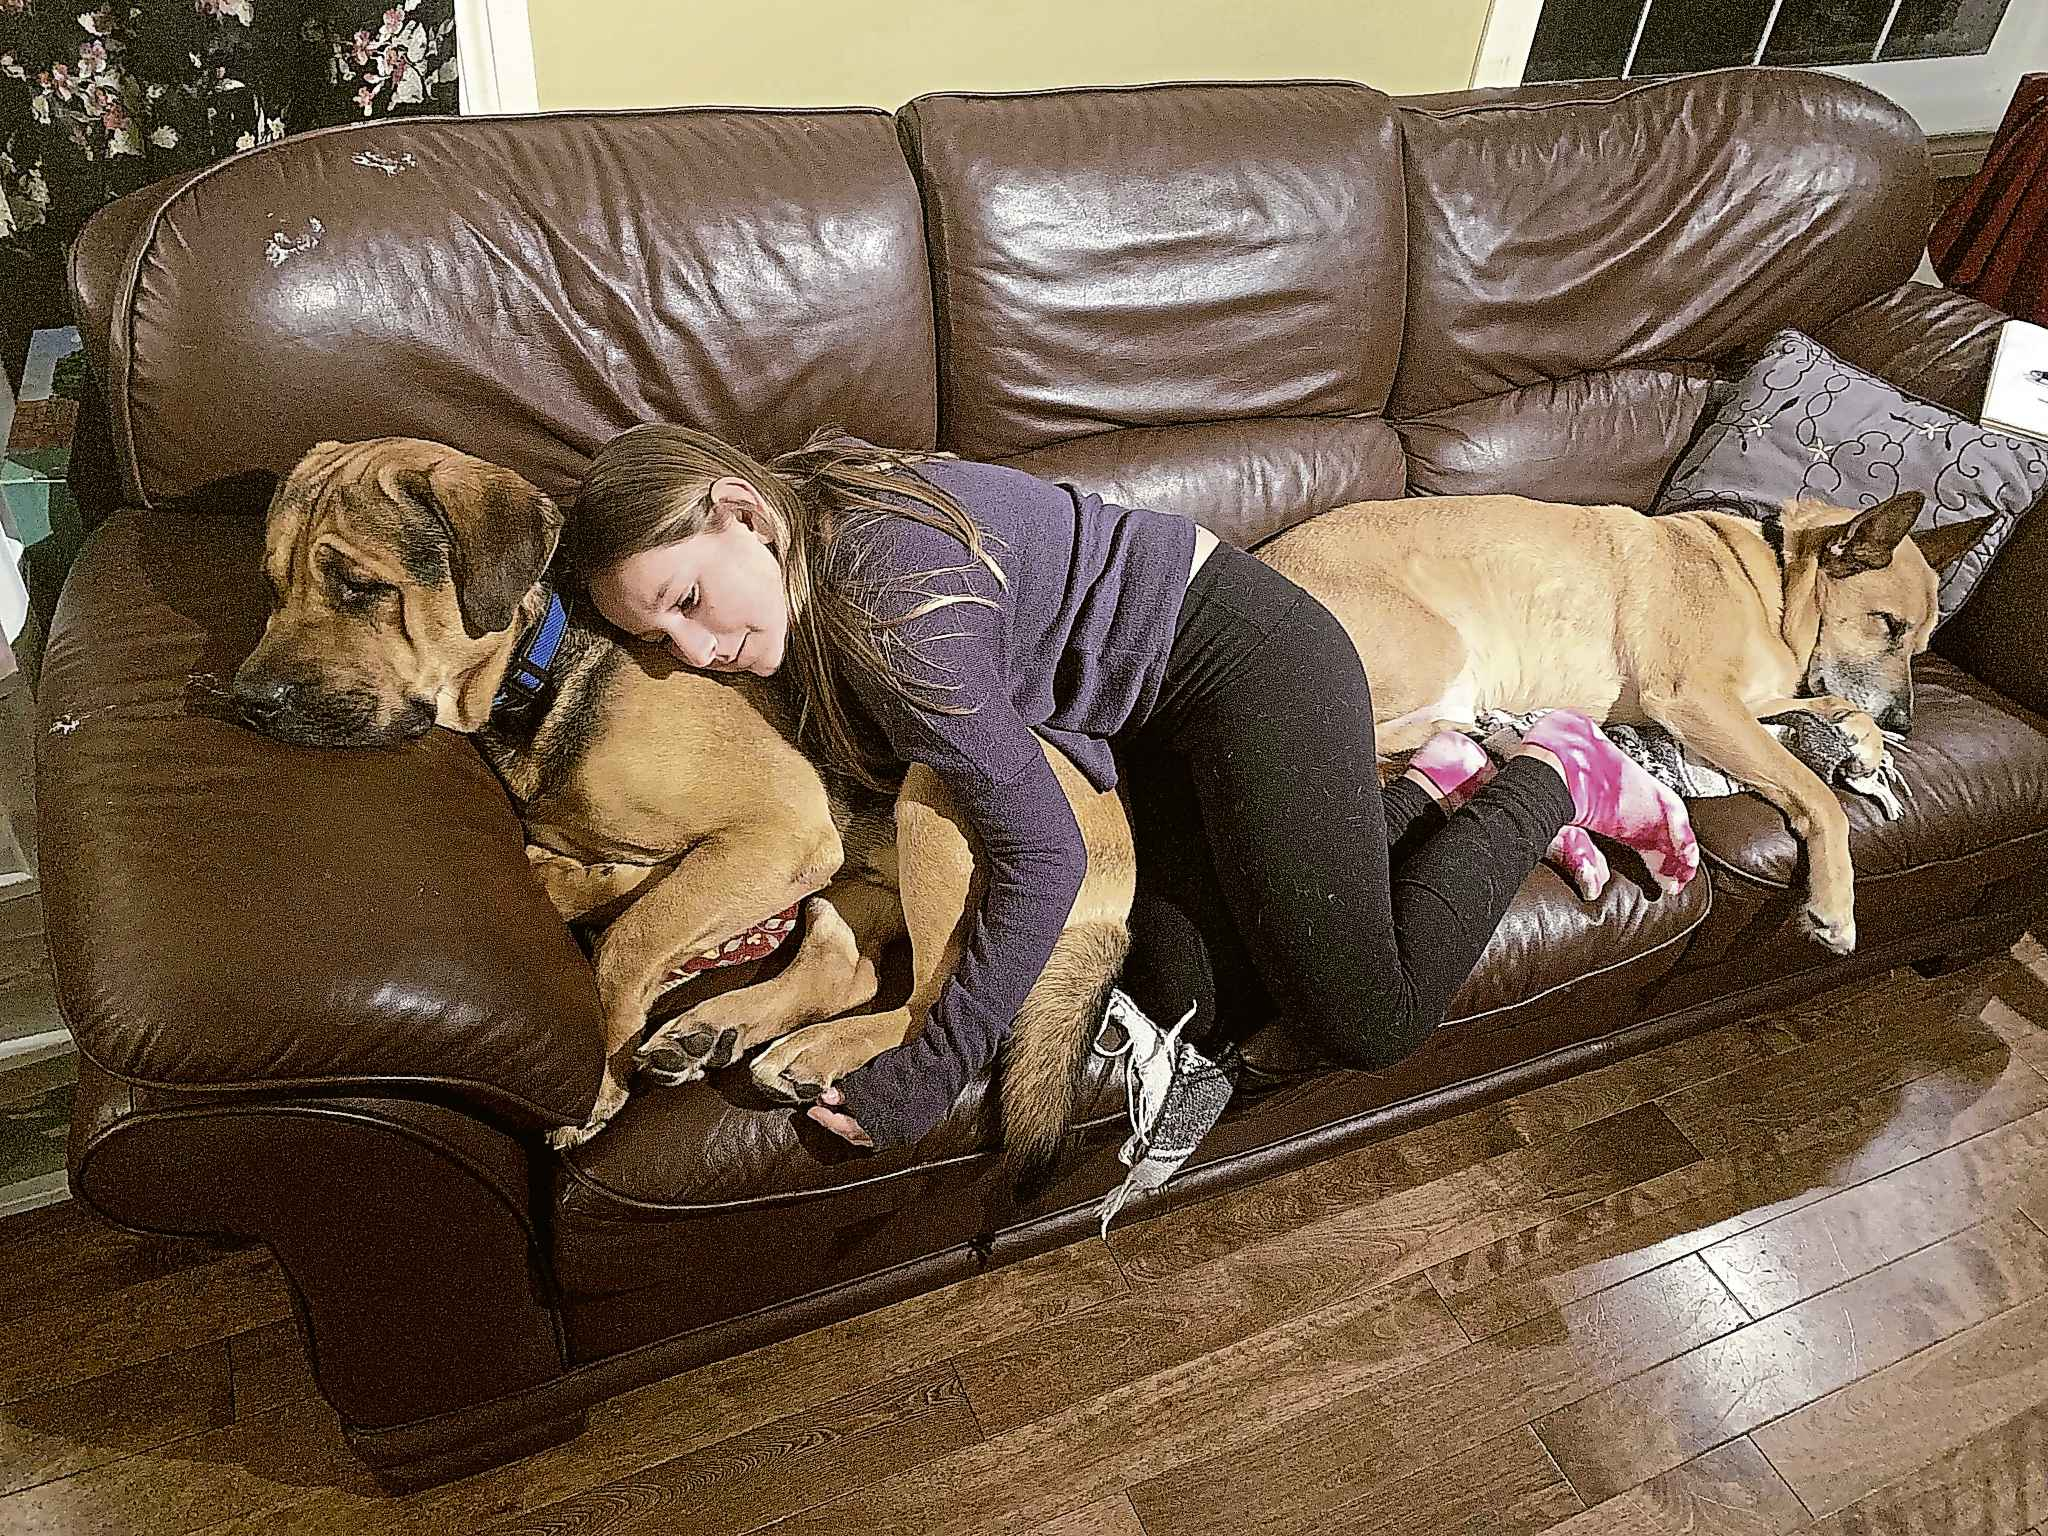 Emily Ross, 11, snuggles with Rosco on the couch while Luke naps on the other end of the couch. Rosco was adopted by the Ross family from animal services after he was rescued Jan. 4 from a dog hoarding situation on Home Street.